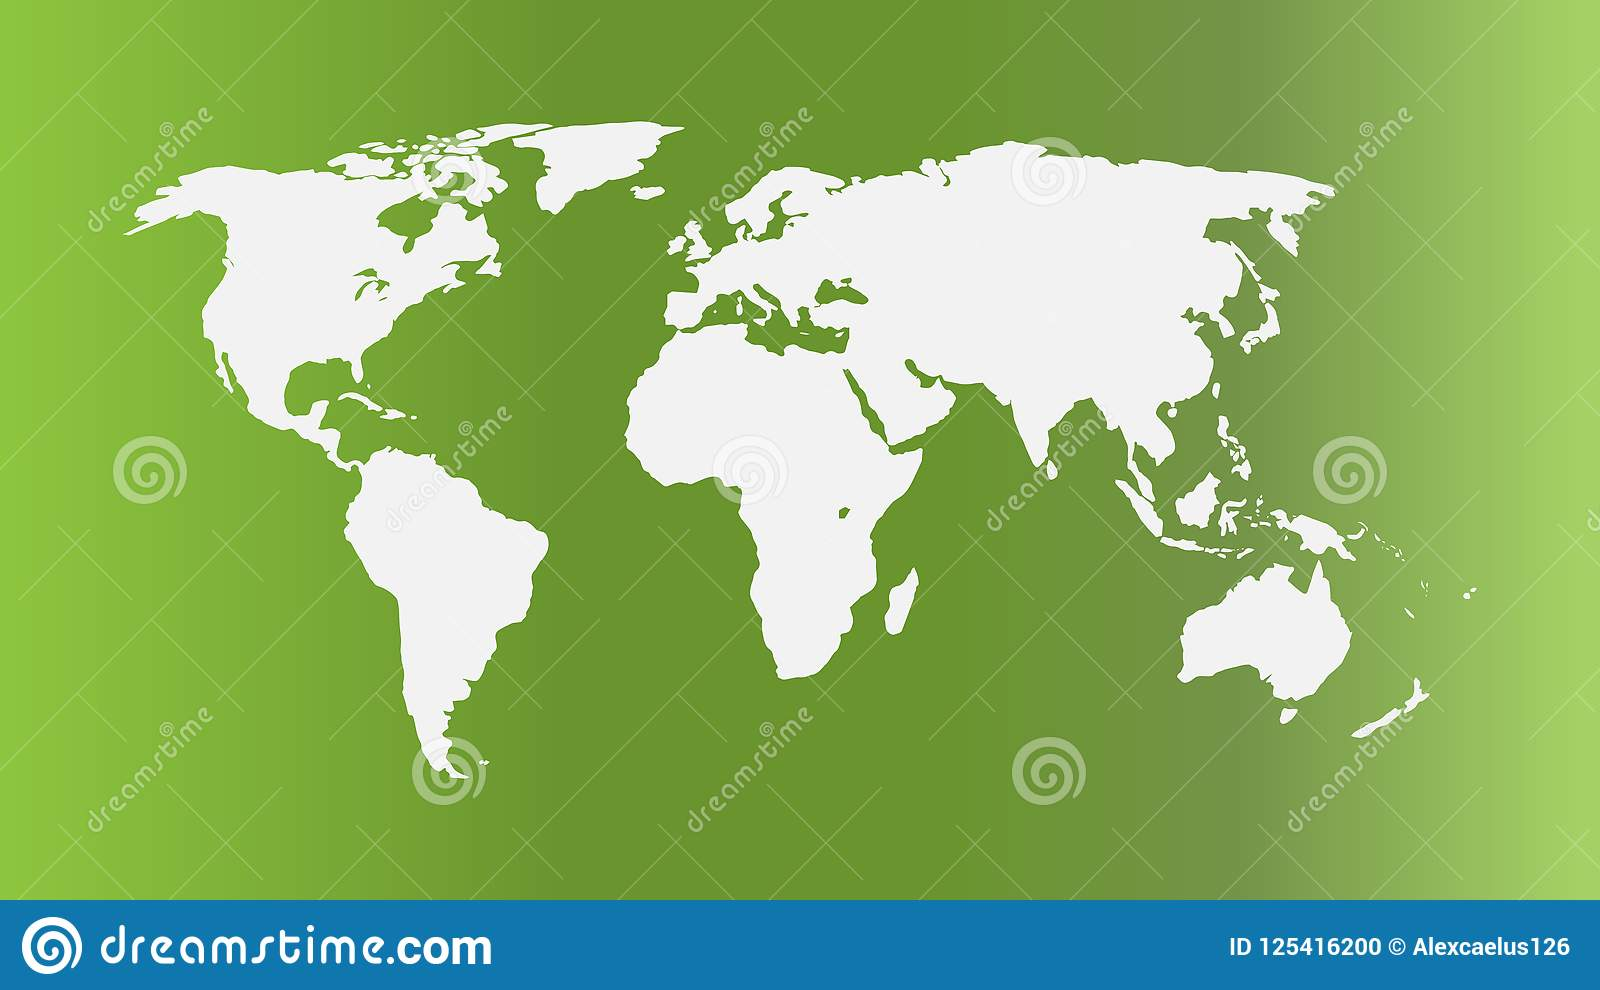 Official Flat Earth Map.World Map Vector Ecology Concept Green World Flat Earth Map For